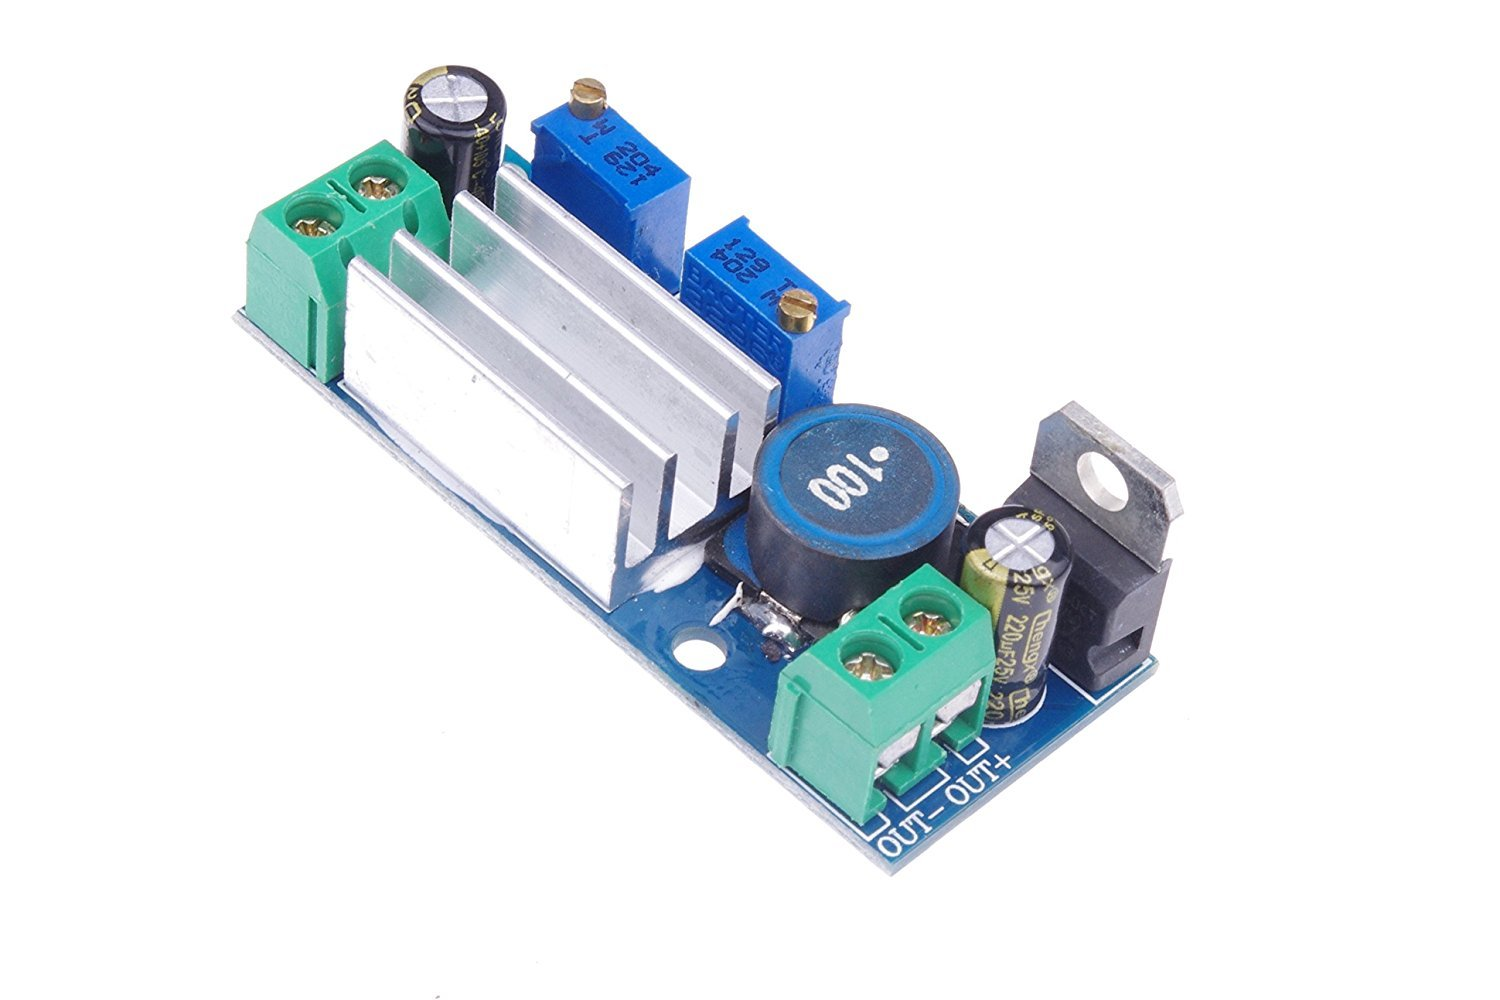 Smakn Dc Buck Converter Step Down Module Power Supply 45v 32v Mode A Low Frequency Frequencylow To 08v 20v 3a Led Driver